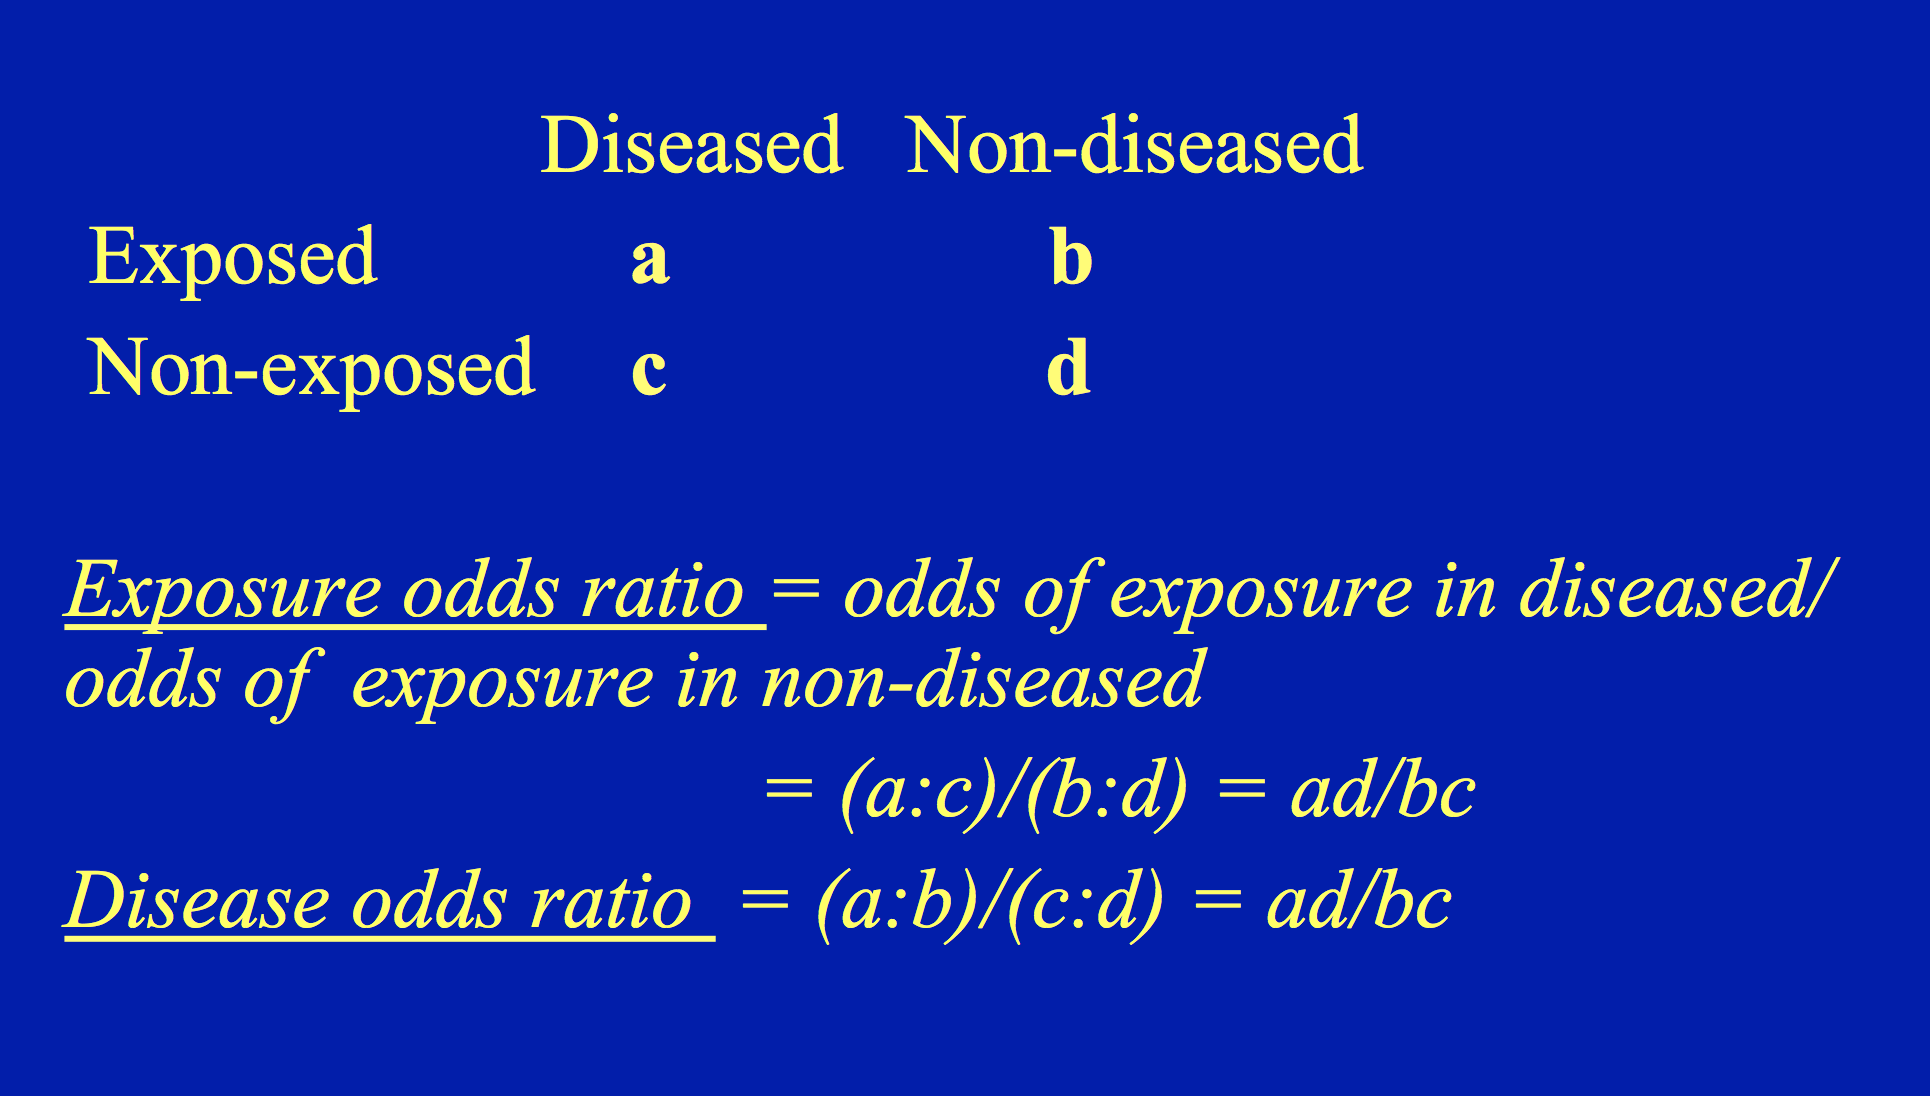 How Can We Convert Rate Ratio To Odds Ratio